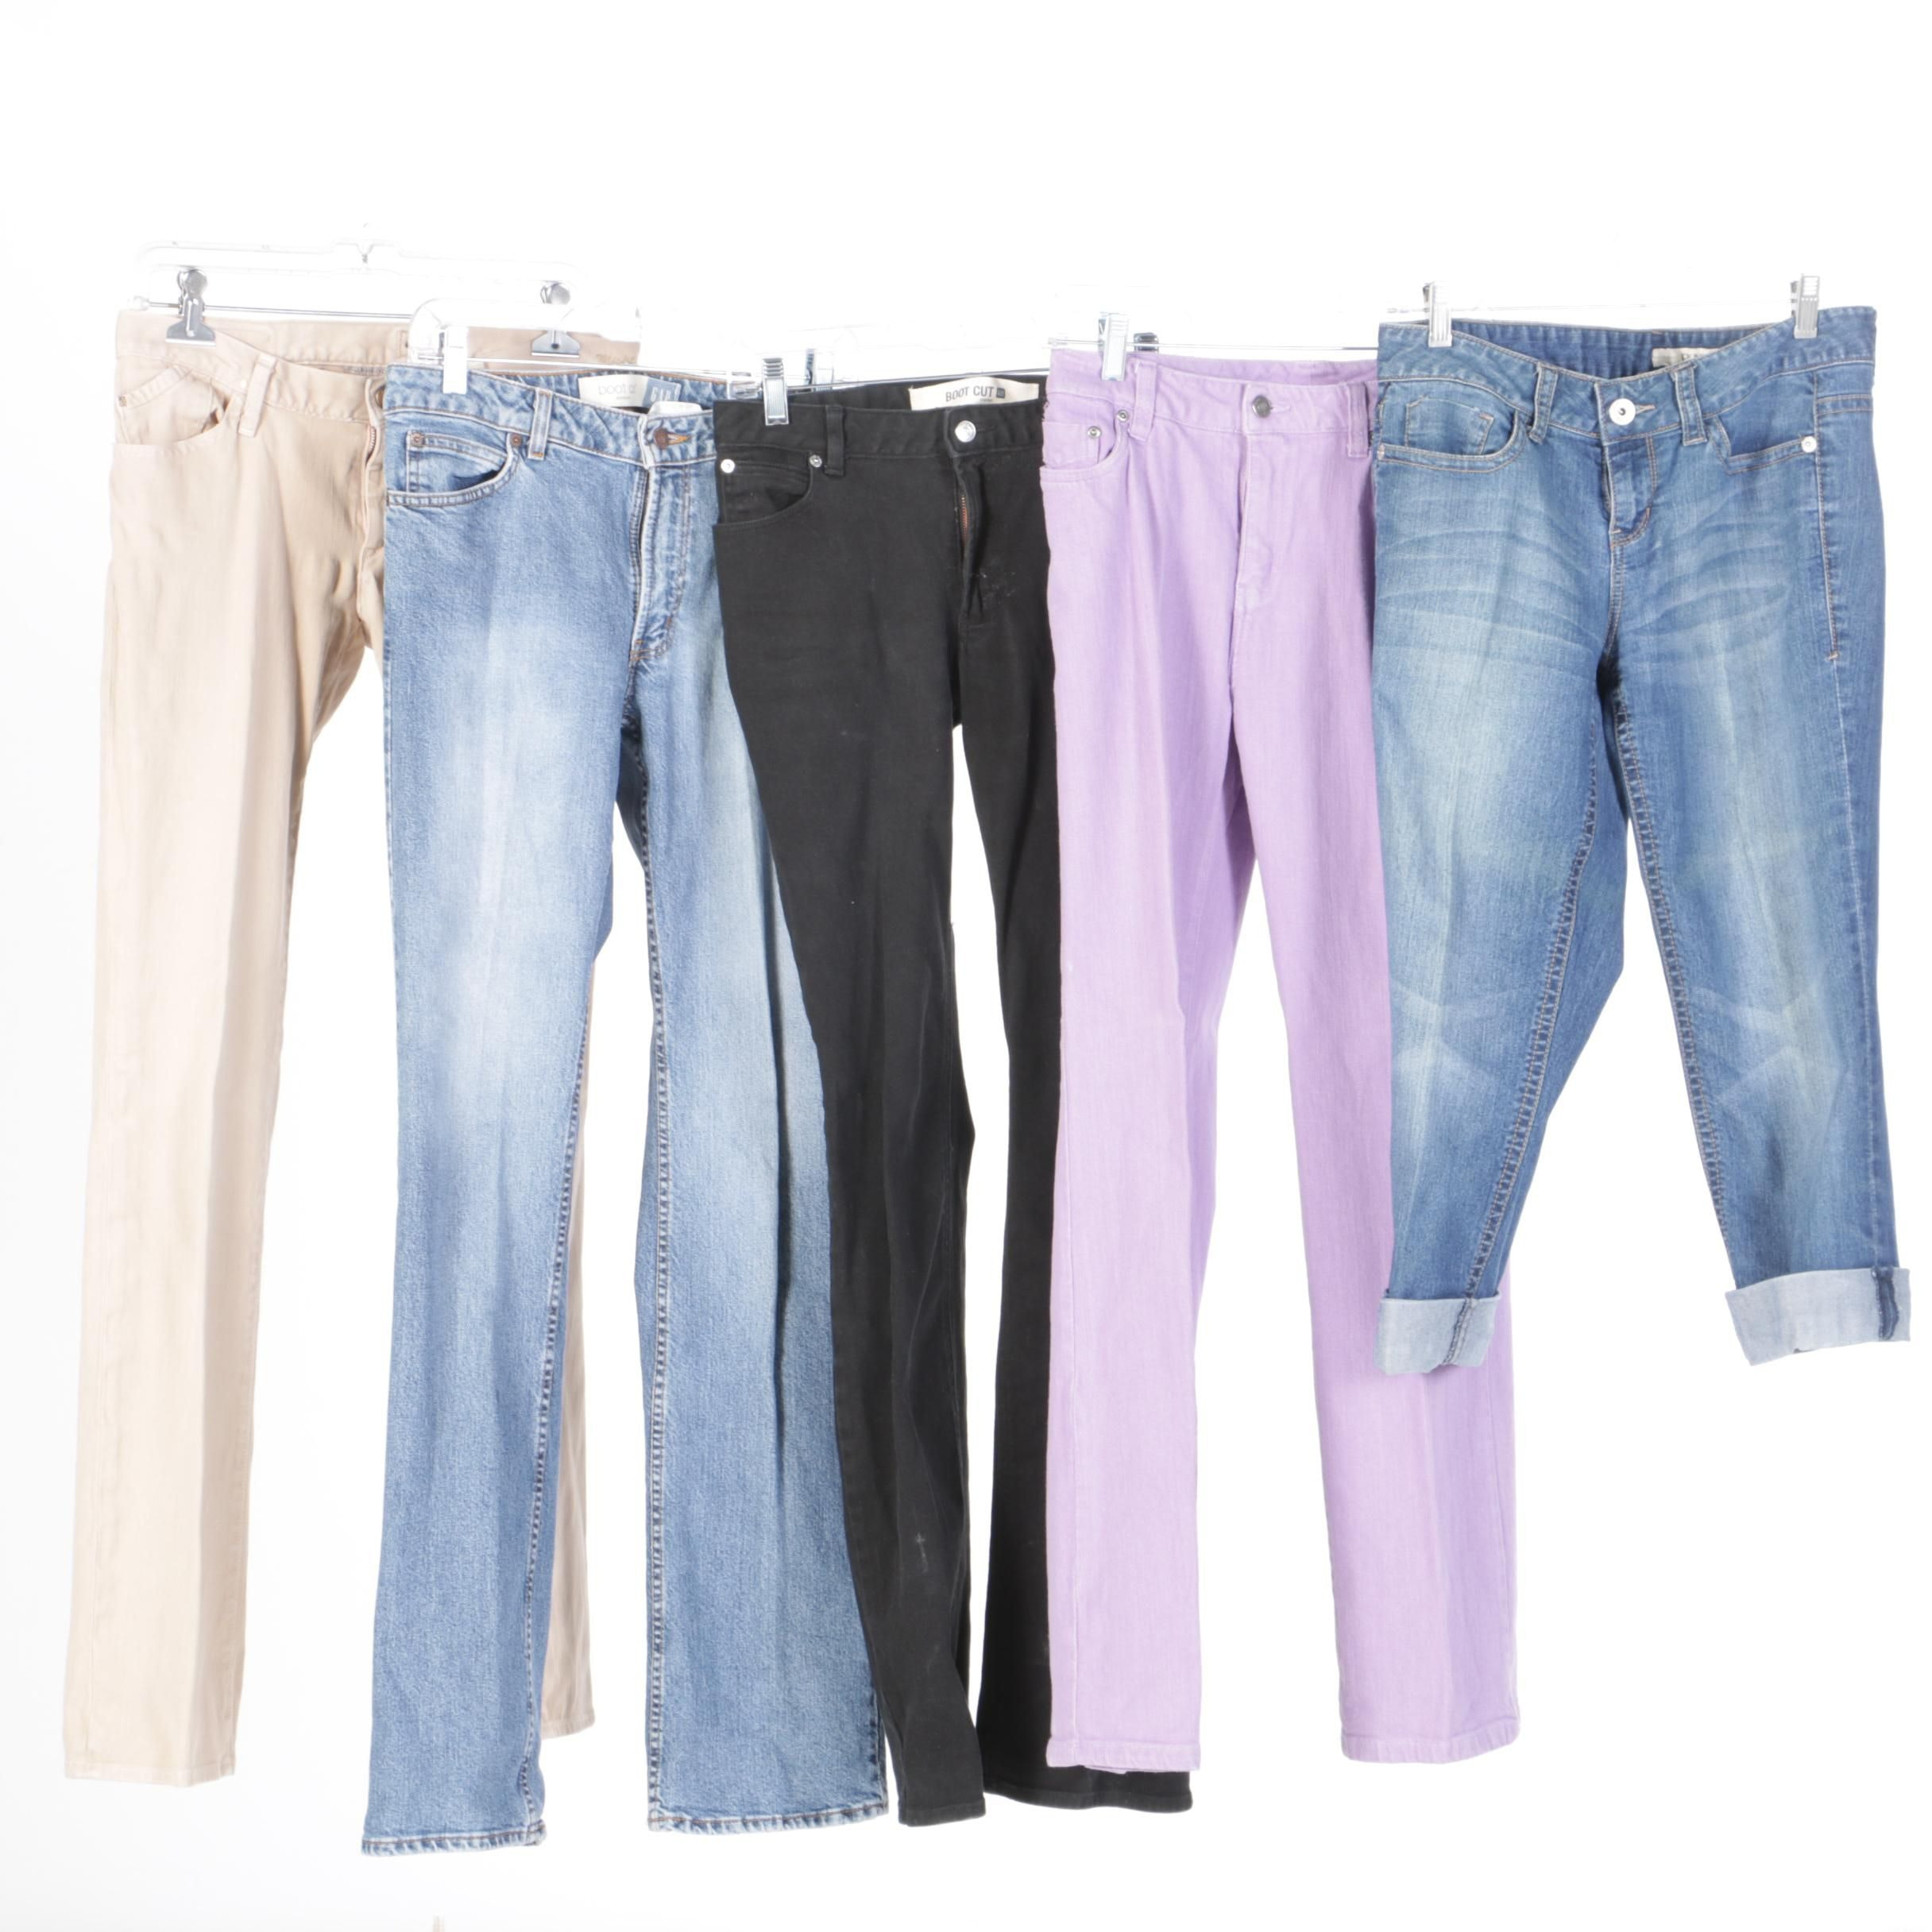 Women's Jeans Including Chadwick's, Gap and DKNY Jeans